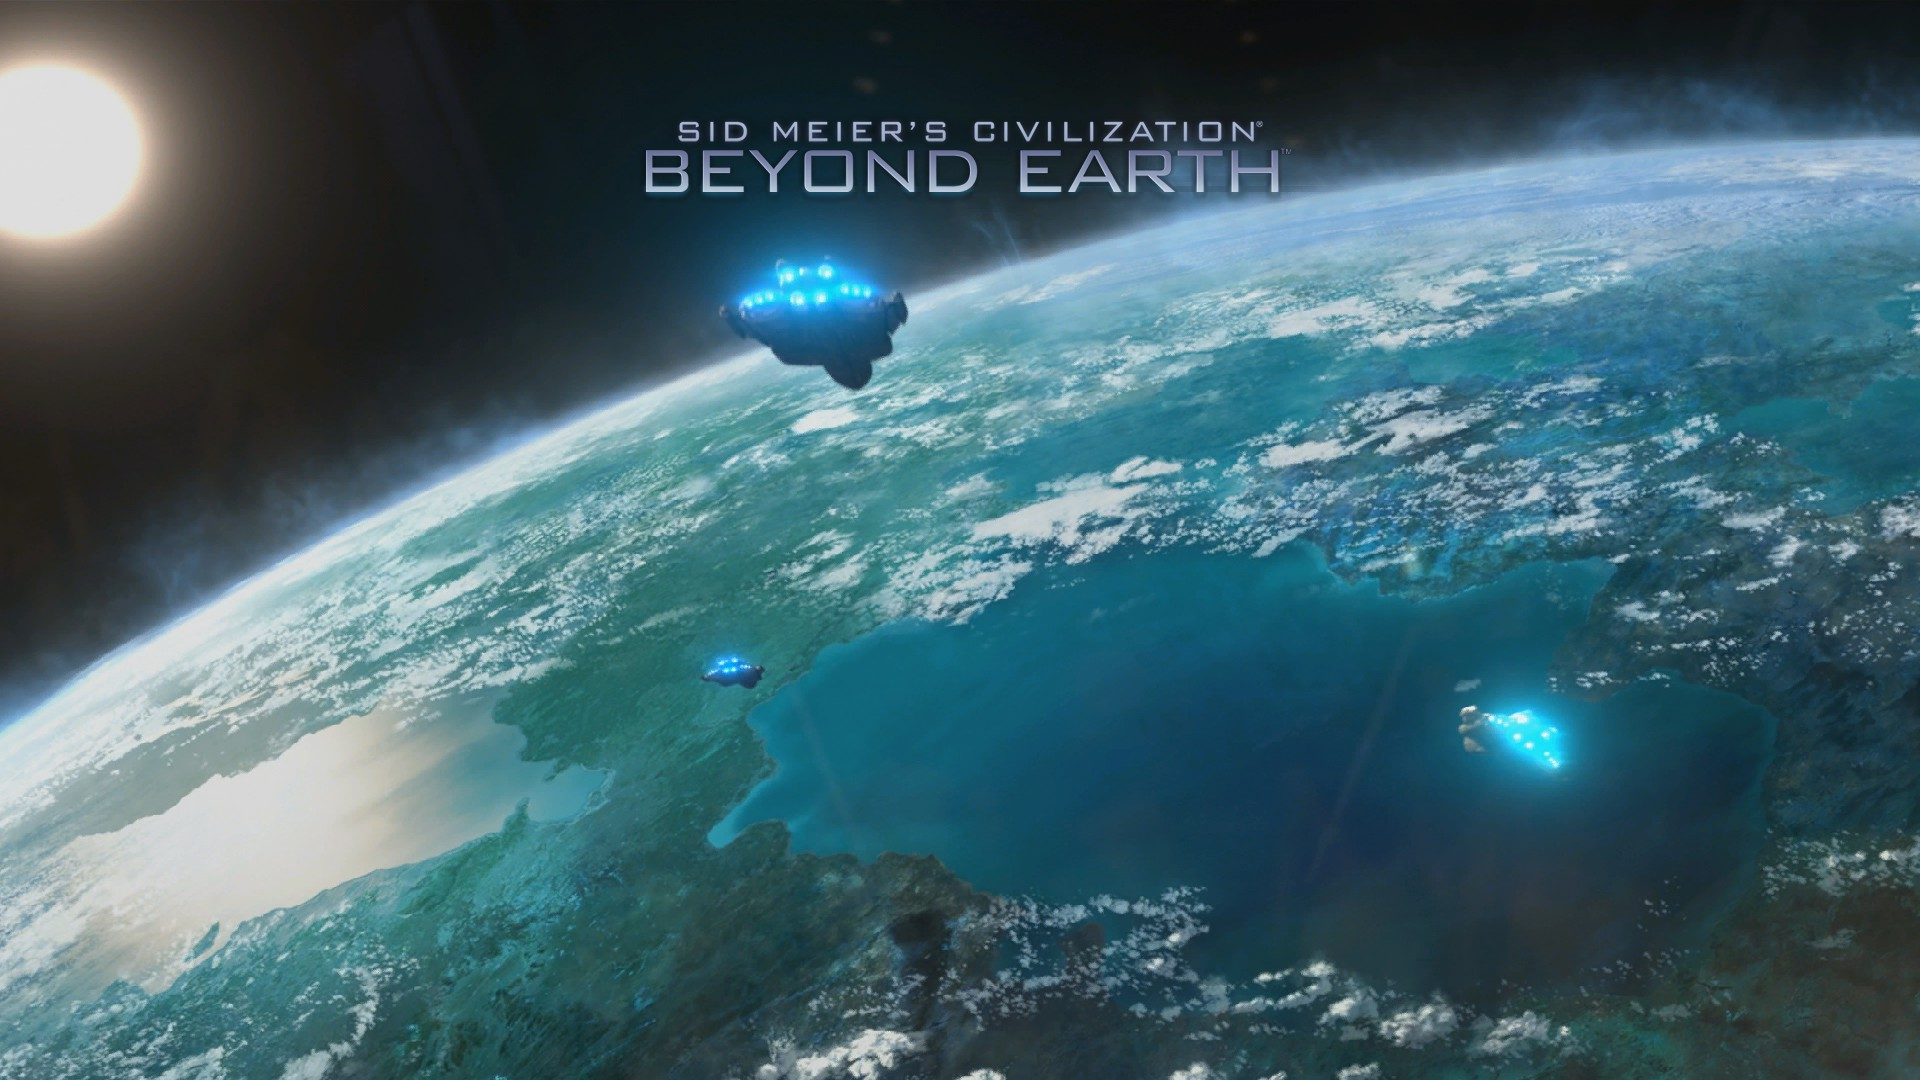 Civilization Beyond Earth Full HD Wallpaper and 1920x1080